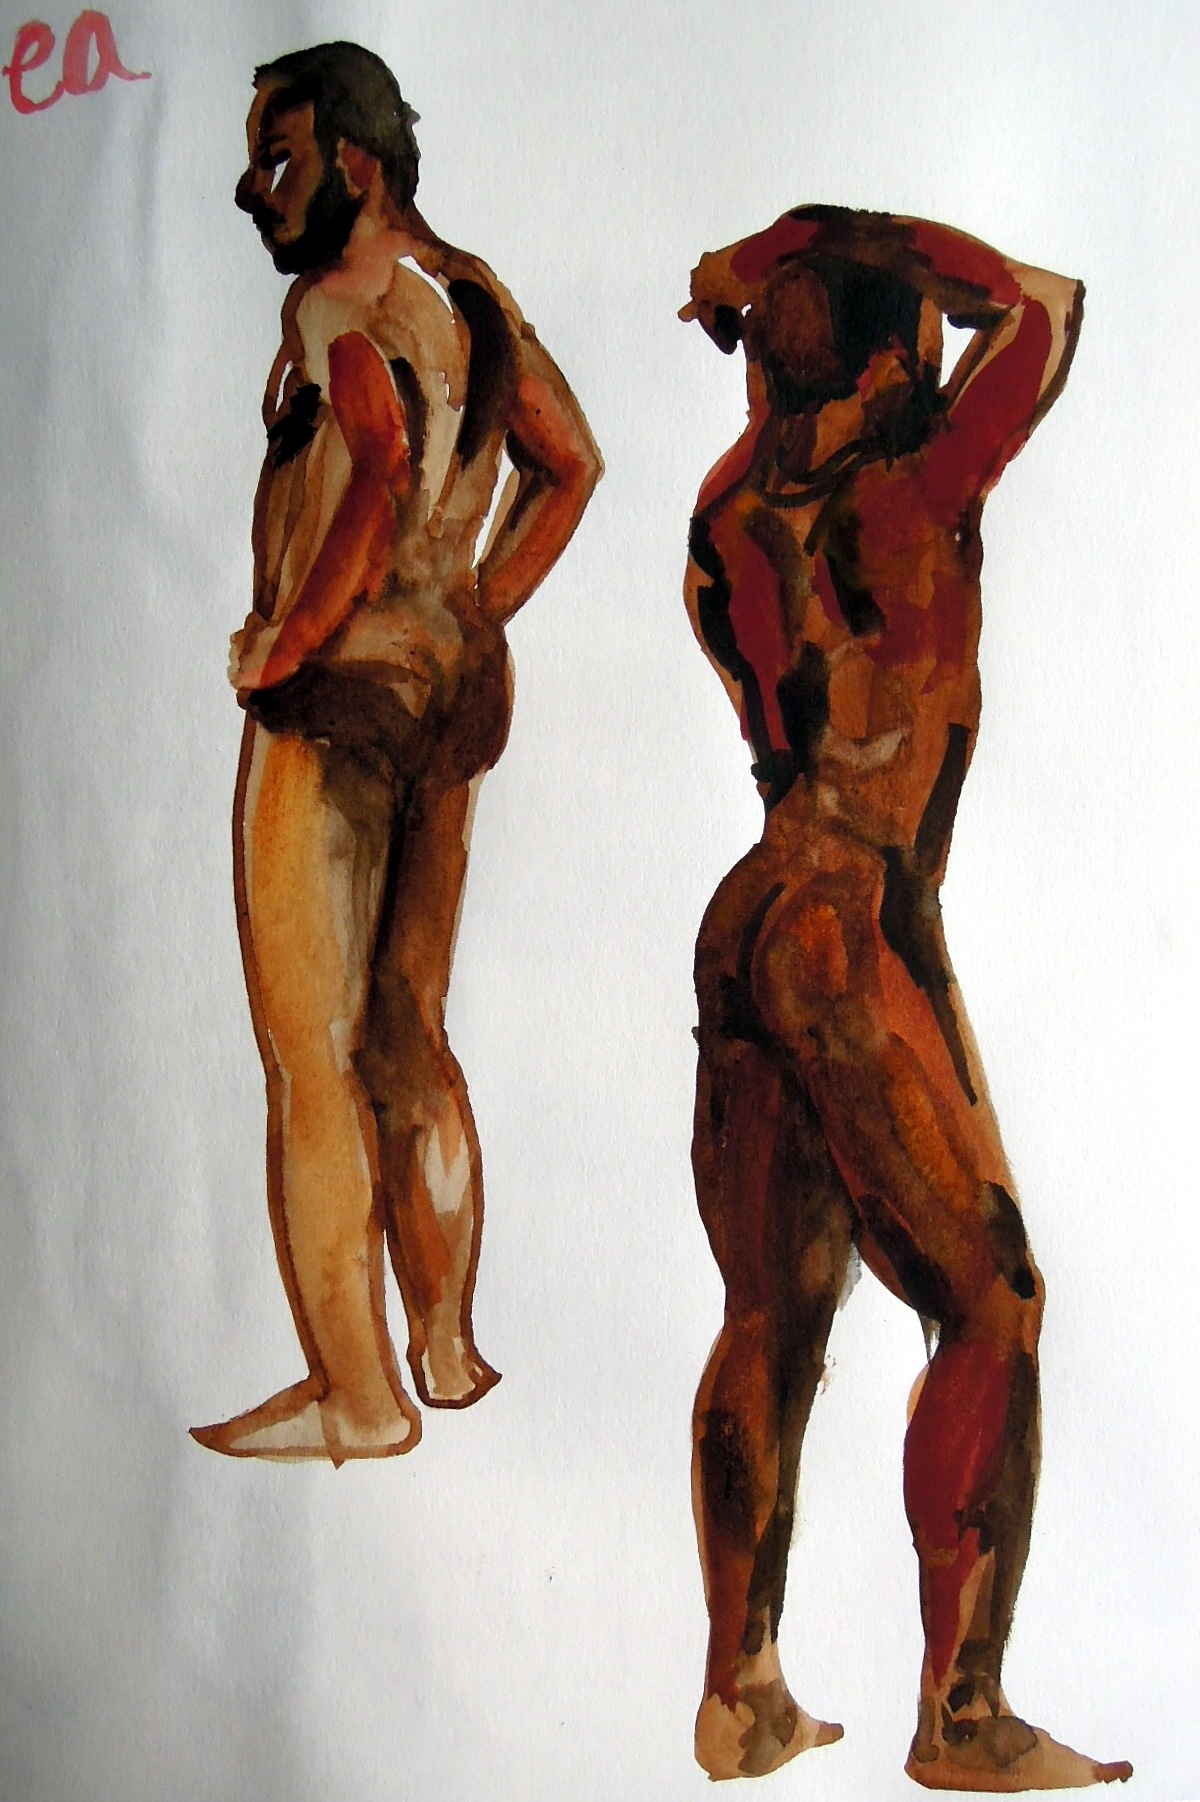 Two watercolor sketches of nude man standing and turned away from artist